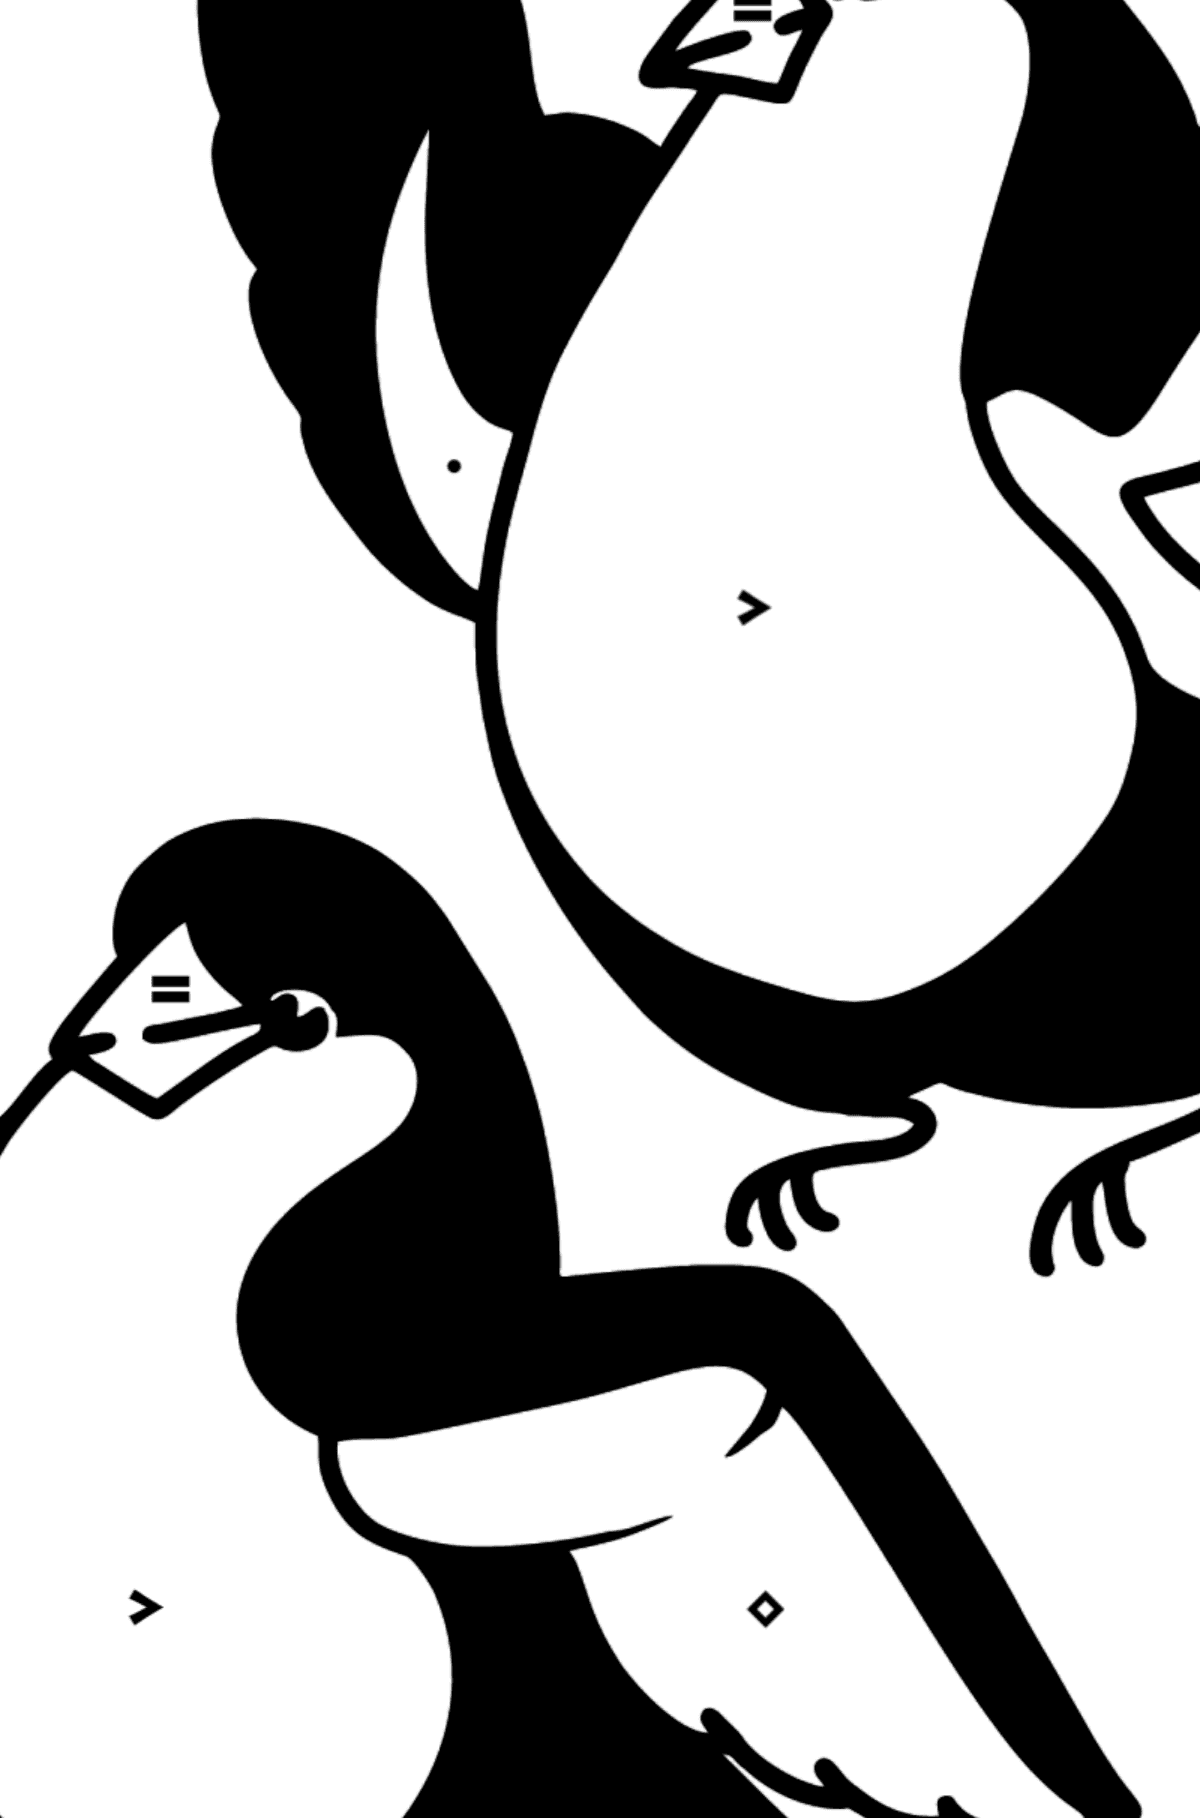 Bullfinches coloring page - Coloring by Symbols for Kids